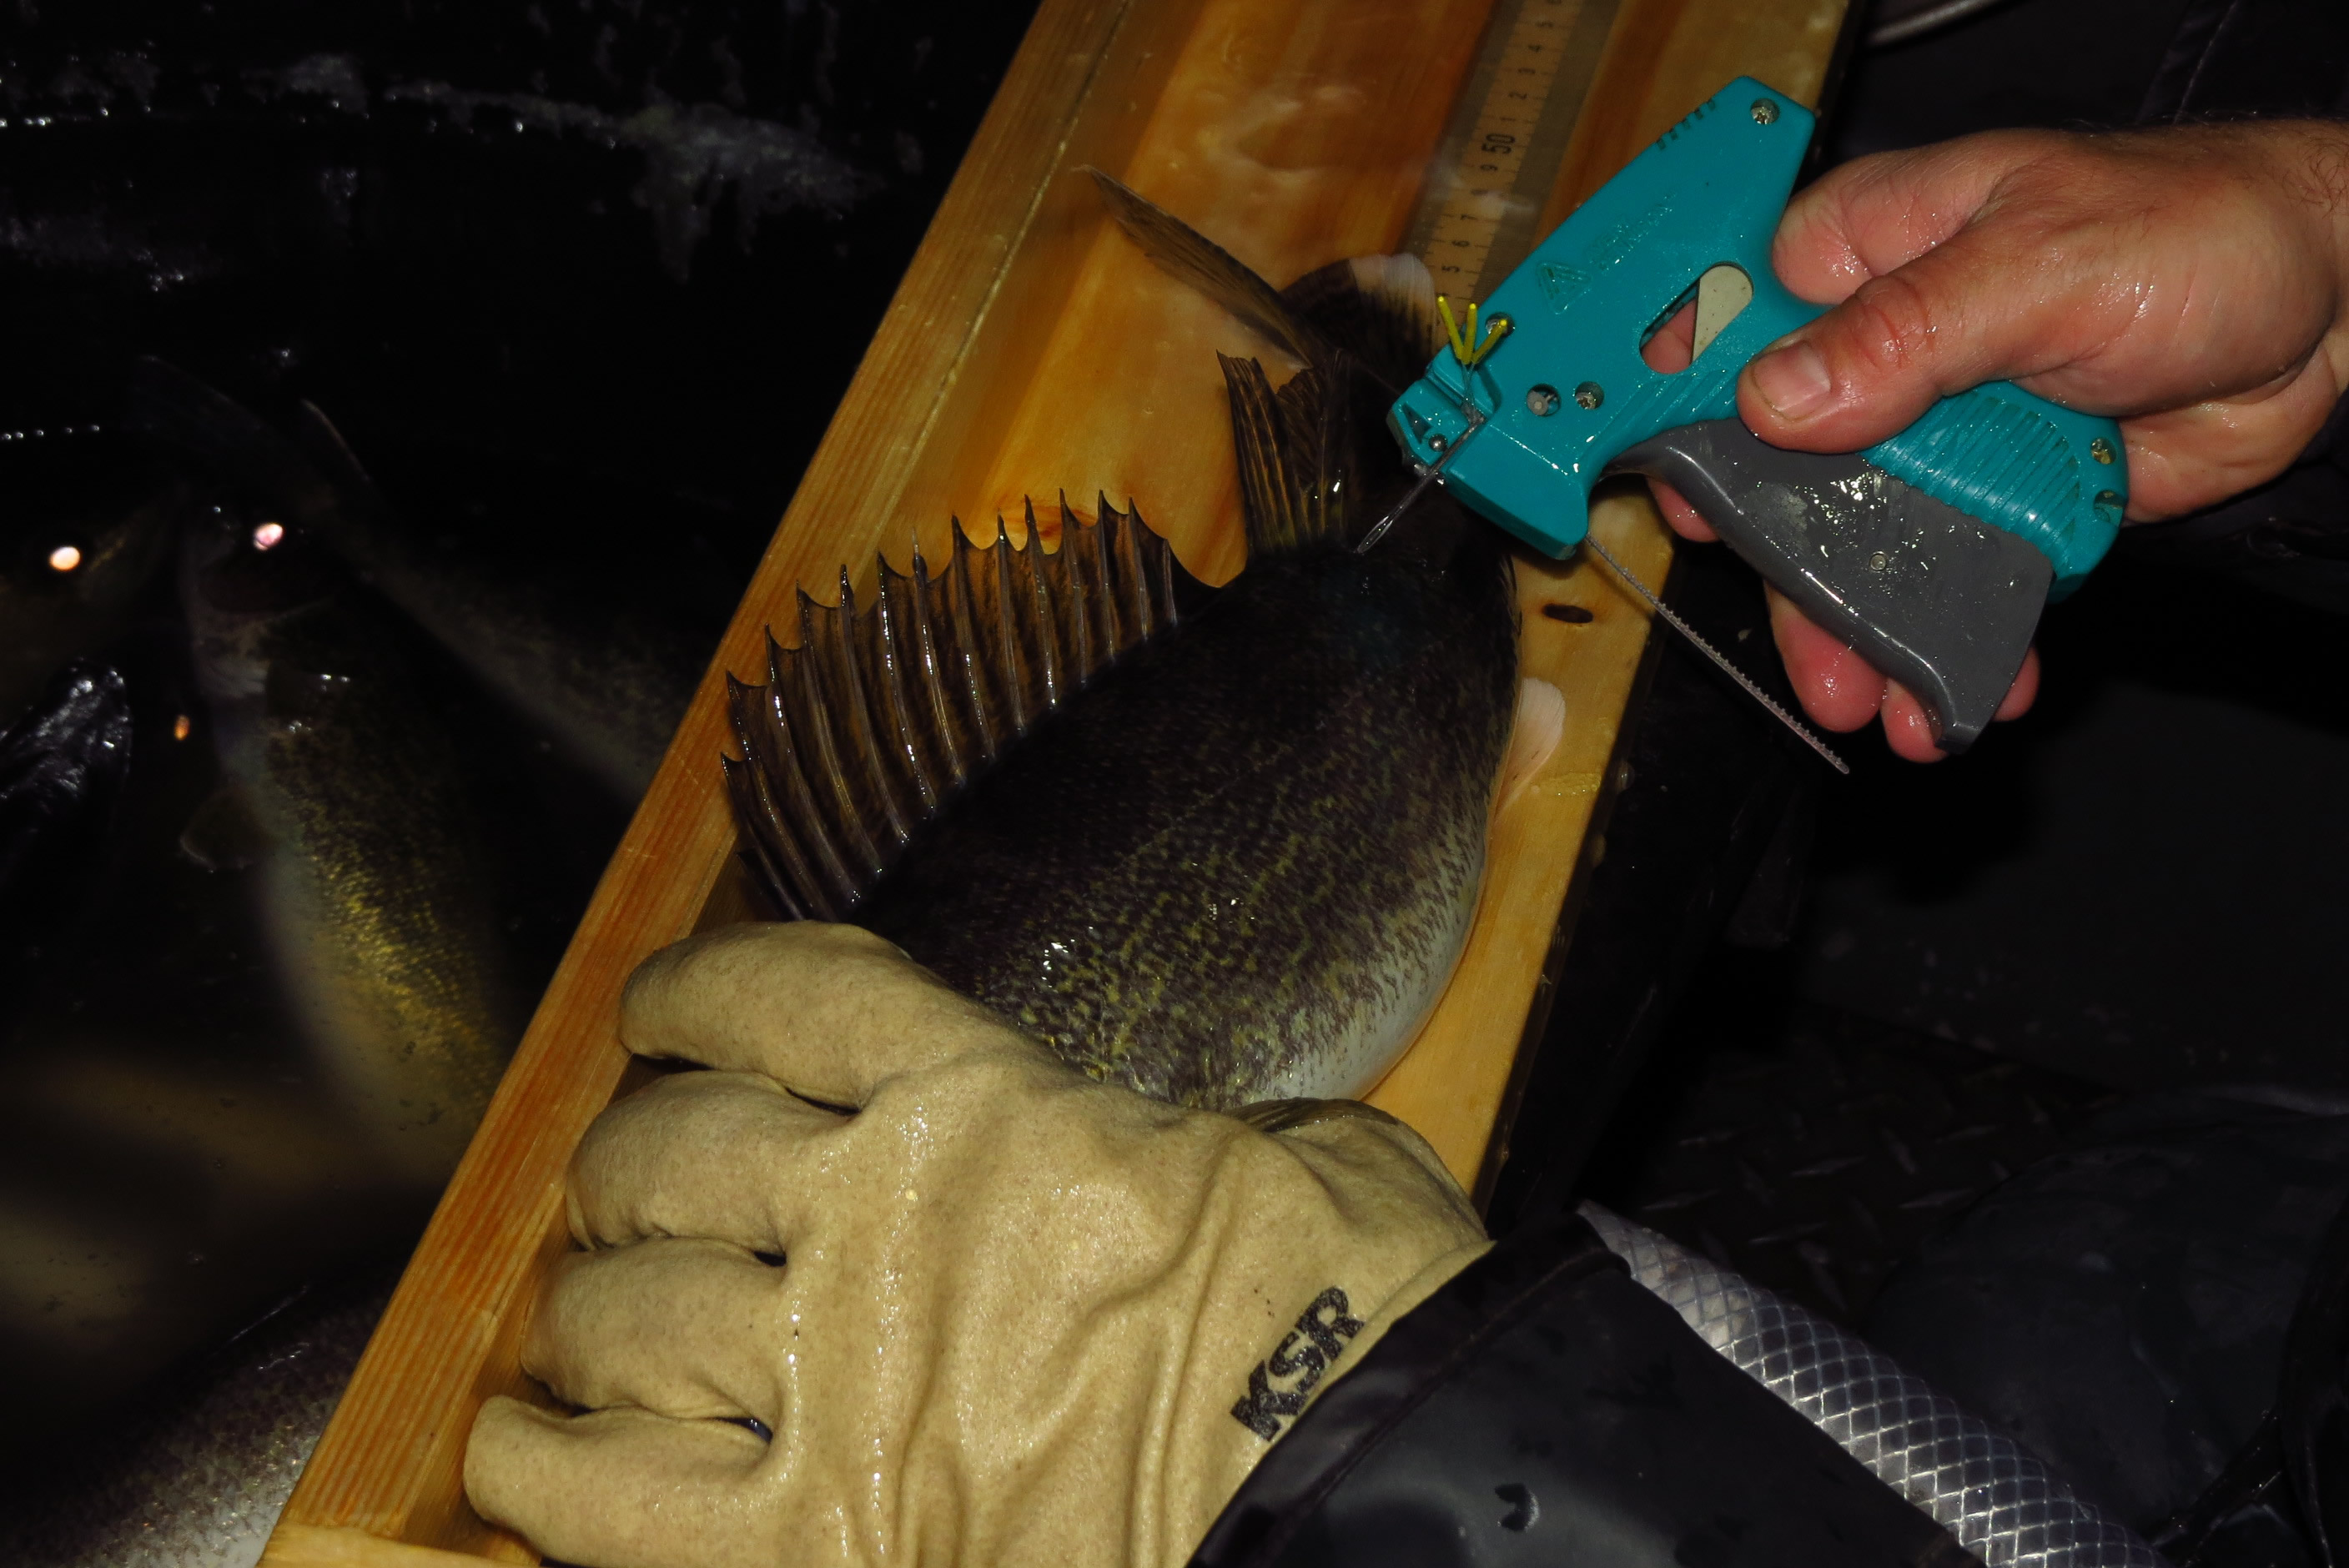 A harmless method is used to attached a tag to this walleye during the 2018 population assessment.